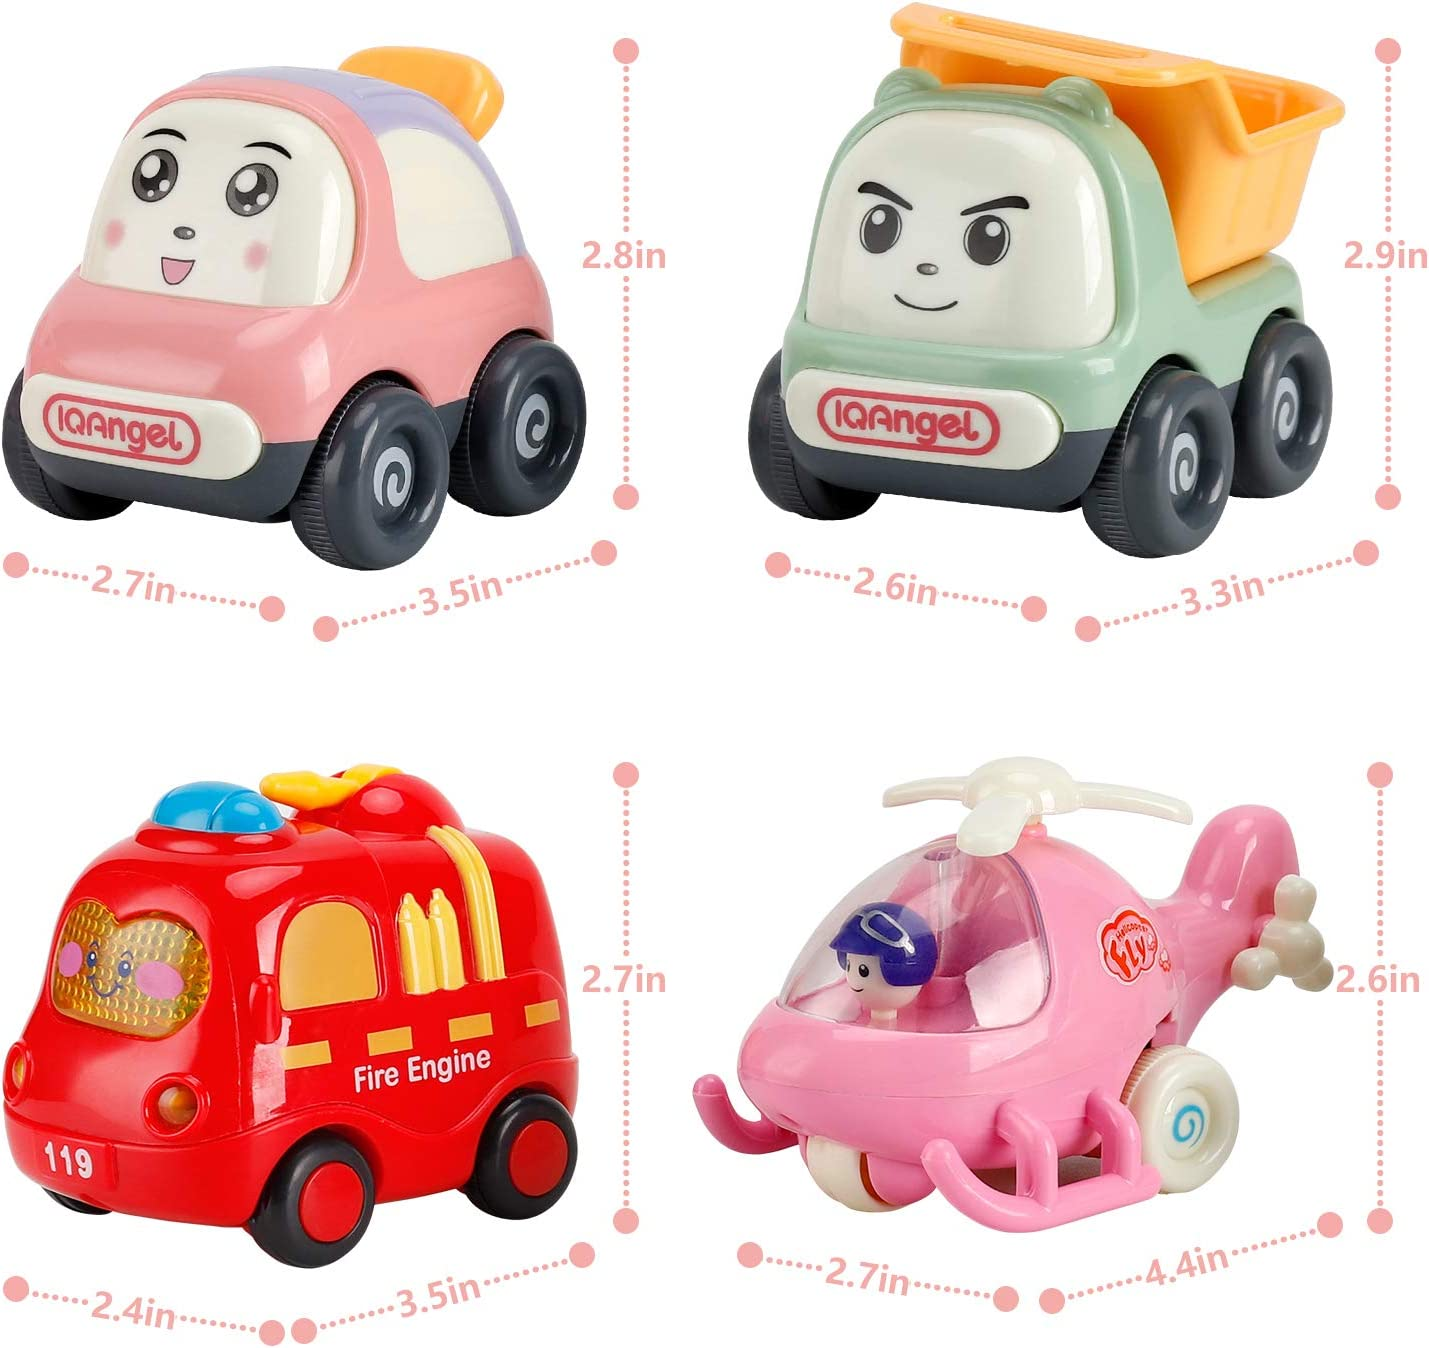 Random Colors 4 Pack Kids Early Educational Vehicles NASHRIO Pull Back Cars Toys for 1 2 3 Years Old Baby and Toddlers Boys and Girls Birthday Party Favors Gift